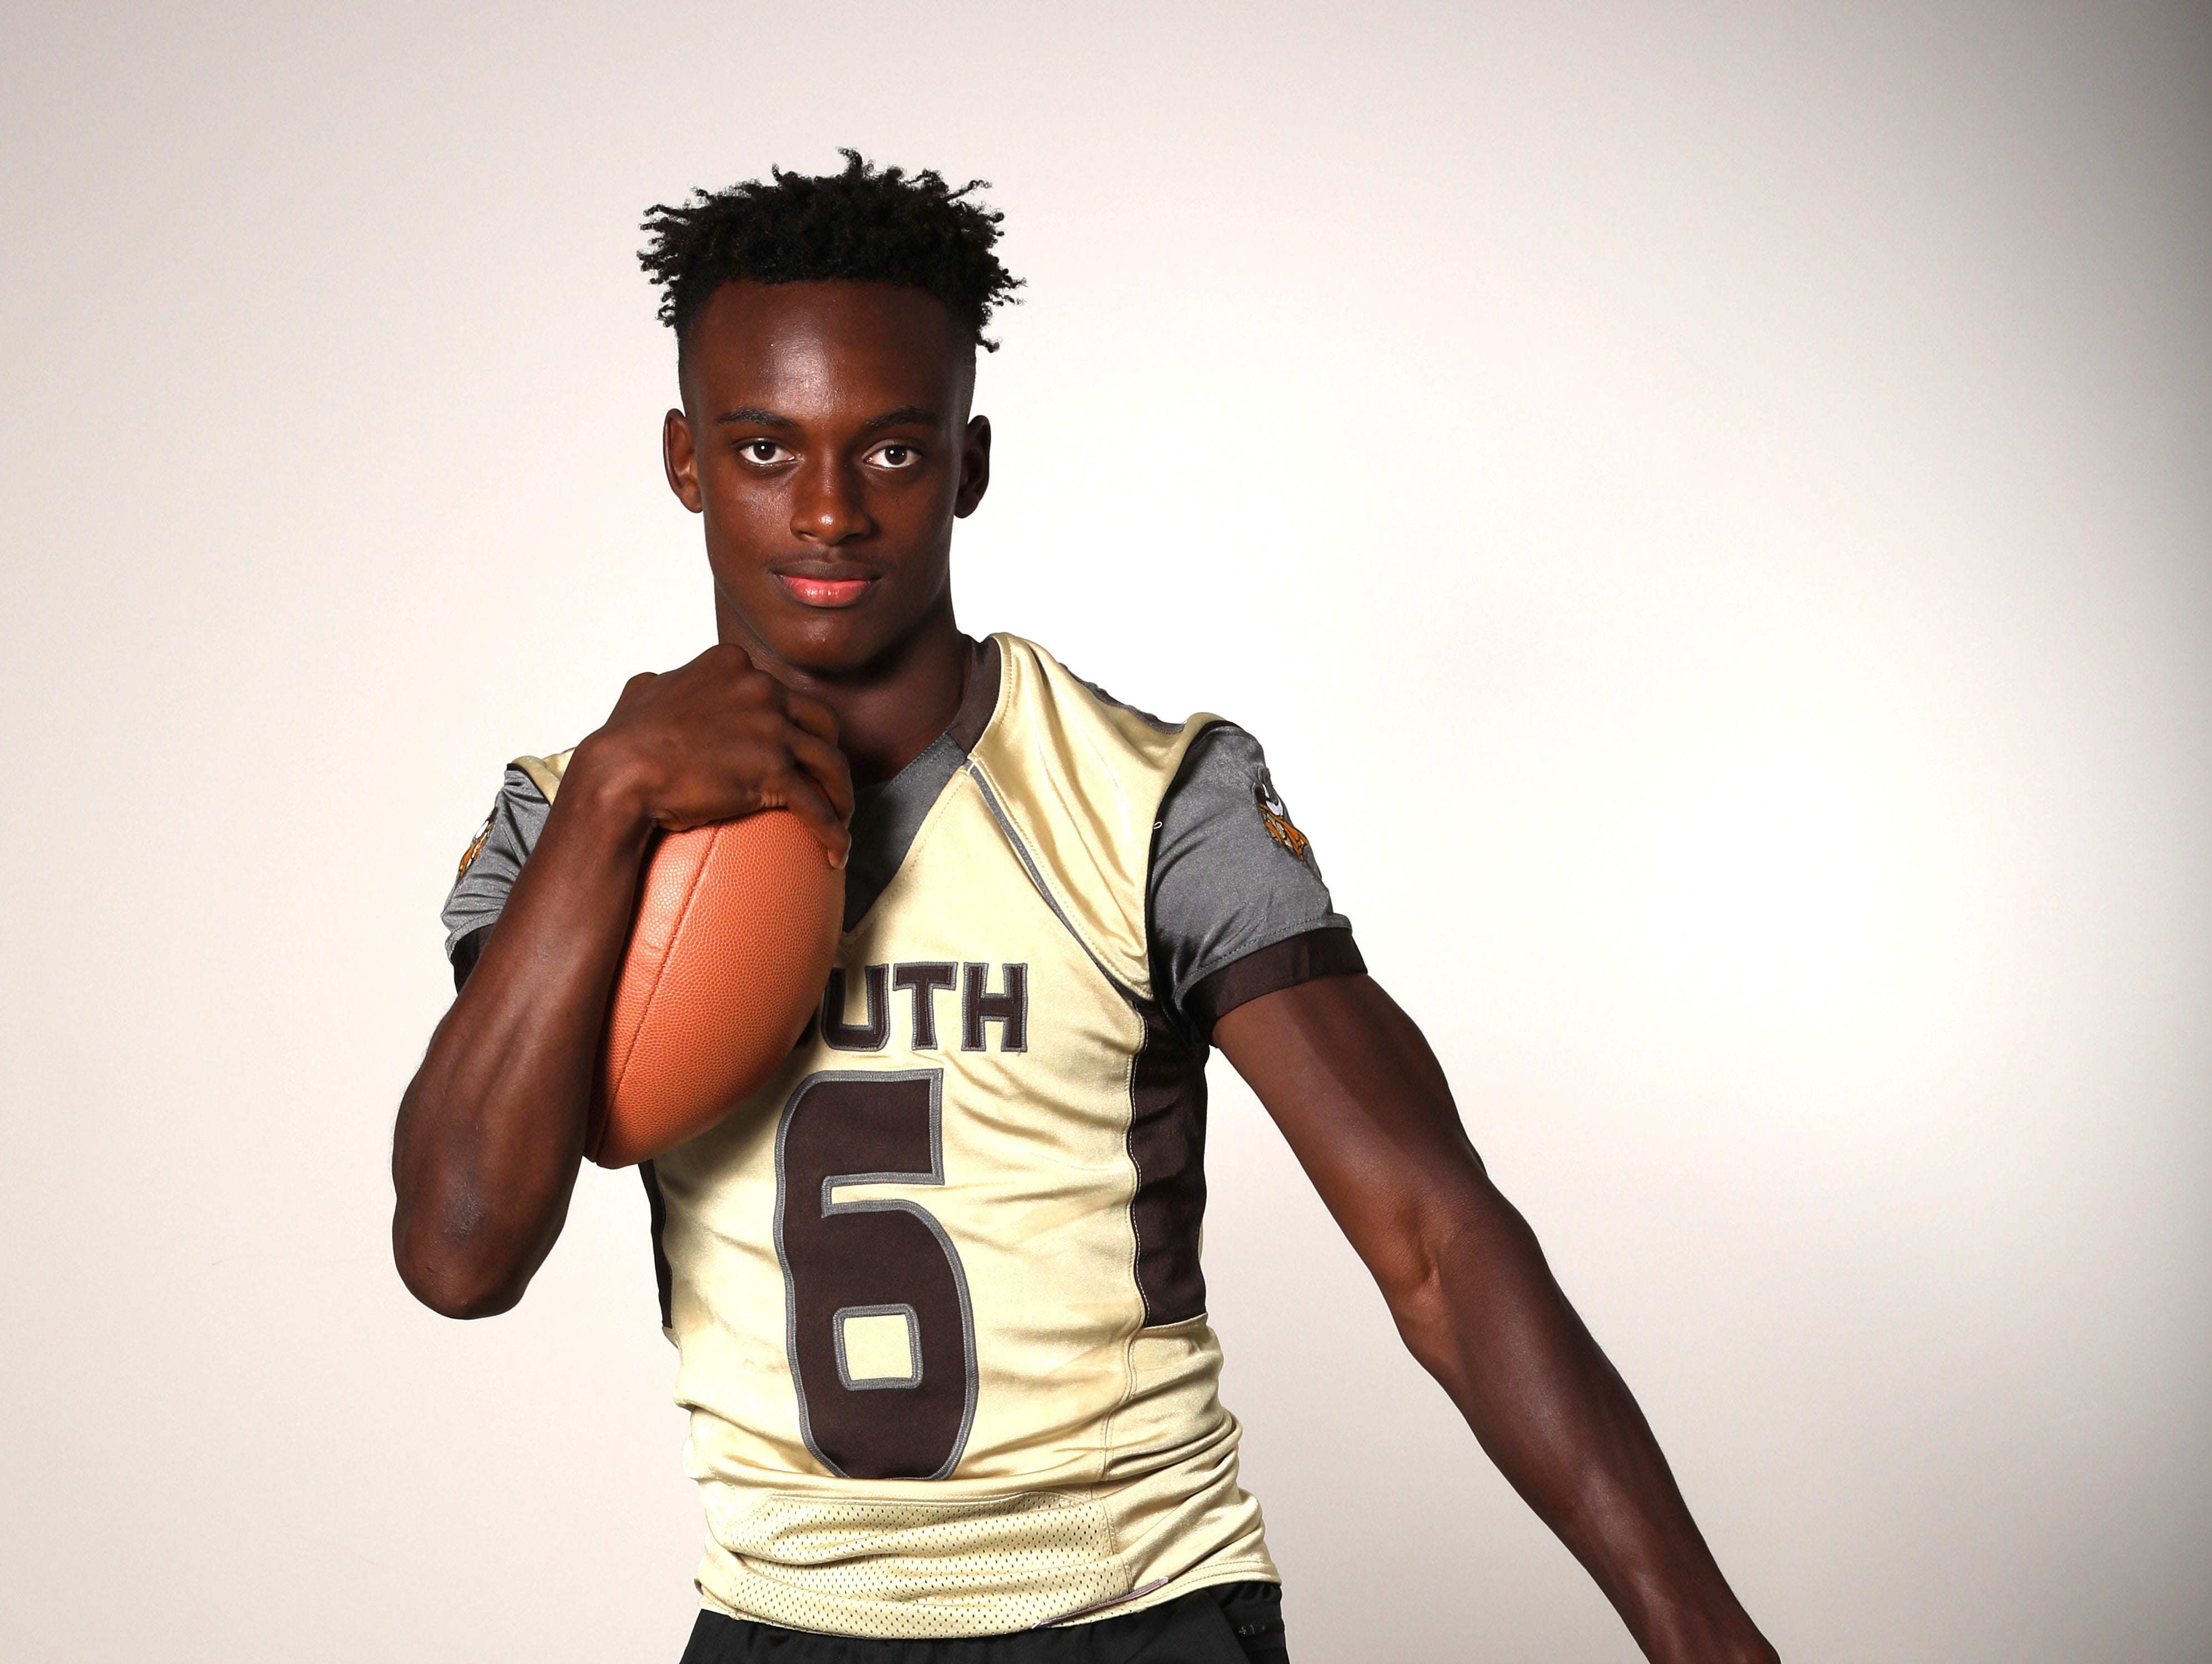 RJ Lamarre, a receiver and defensive back for the Clarkstown South High School football team, photographed Aug. 24, 2018.